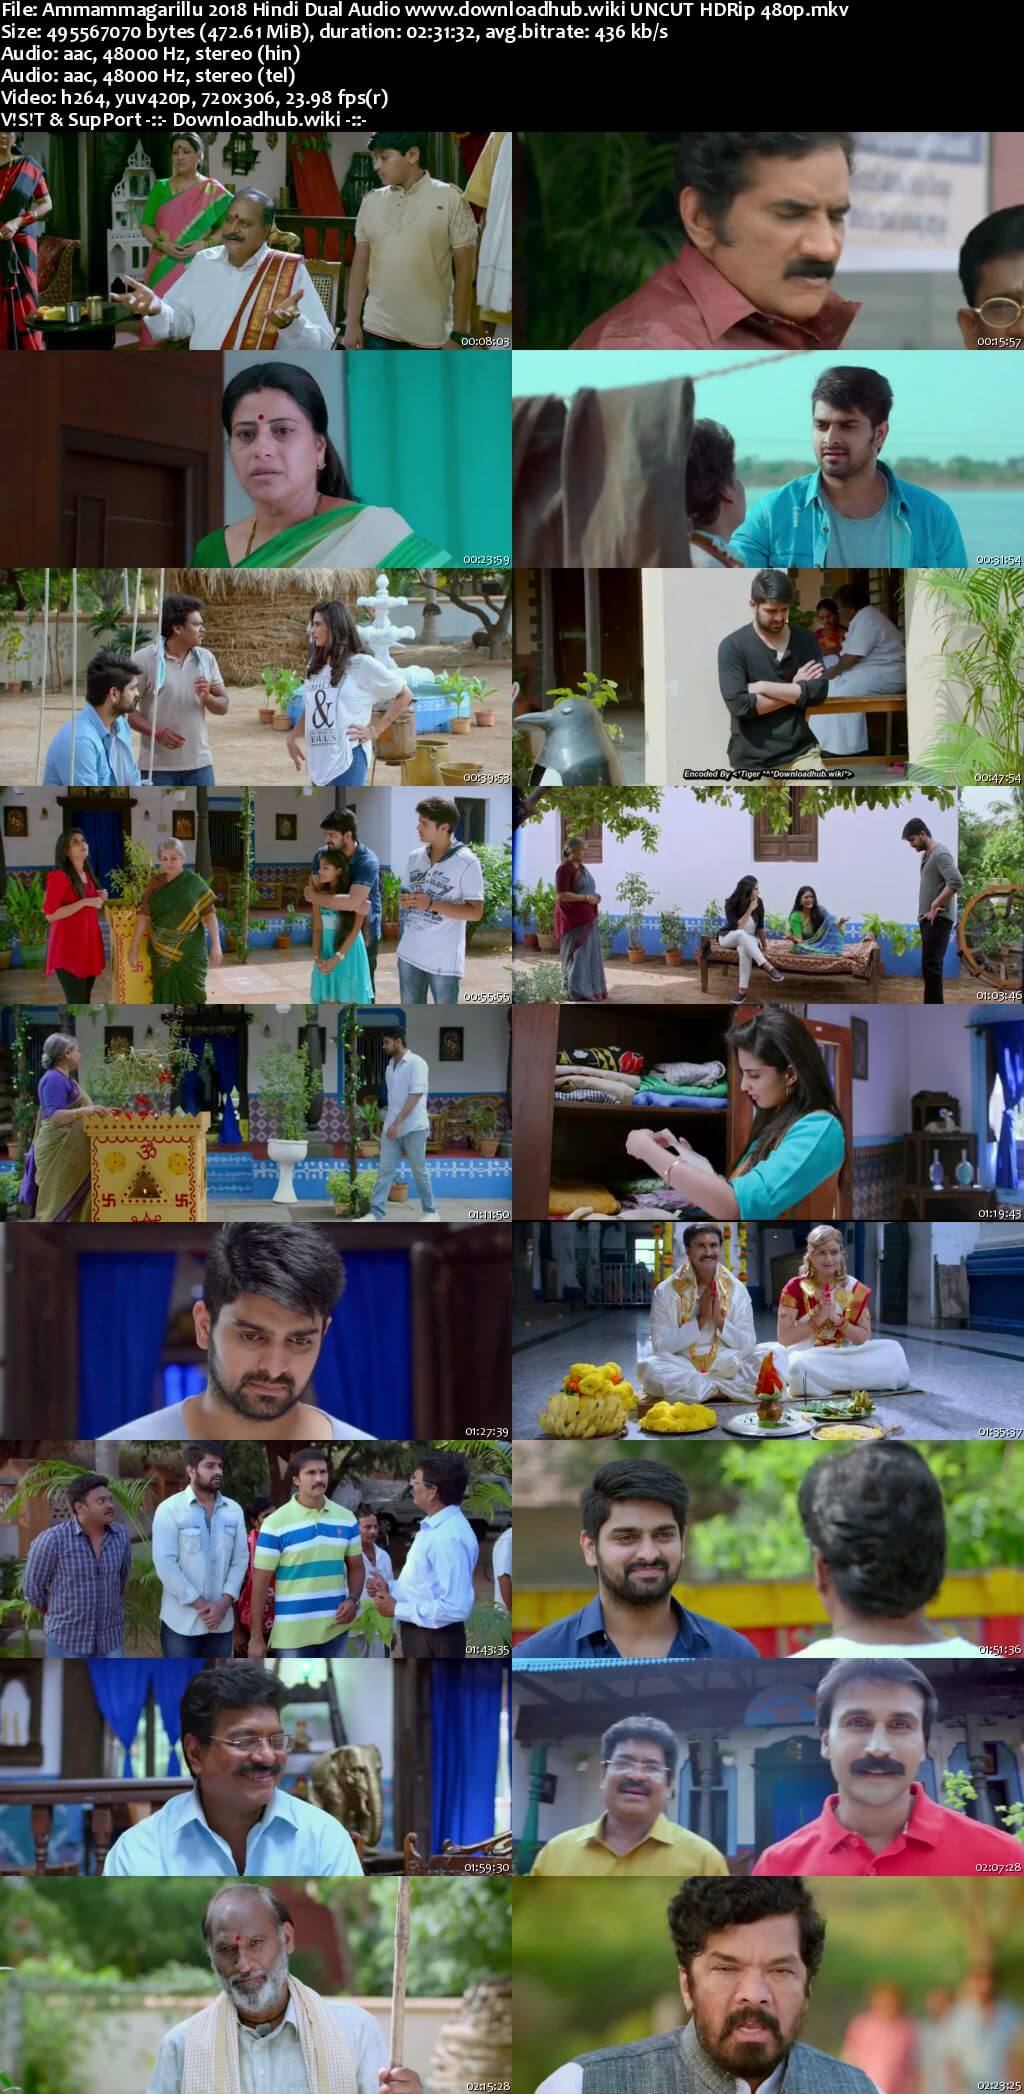 Ammammagarillu 2018 Hindi Dual Audio 450MB UNCUT HDRip 480p